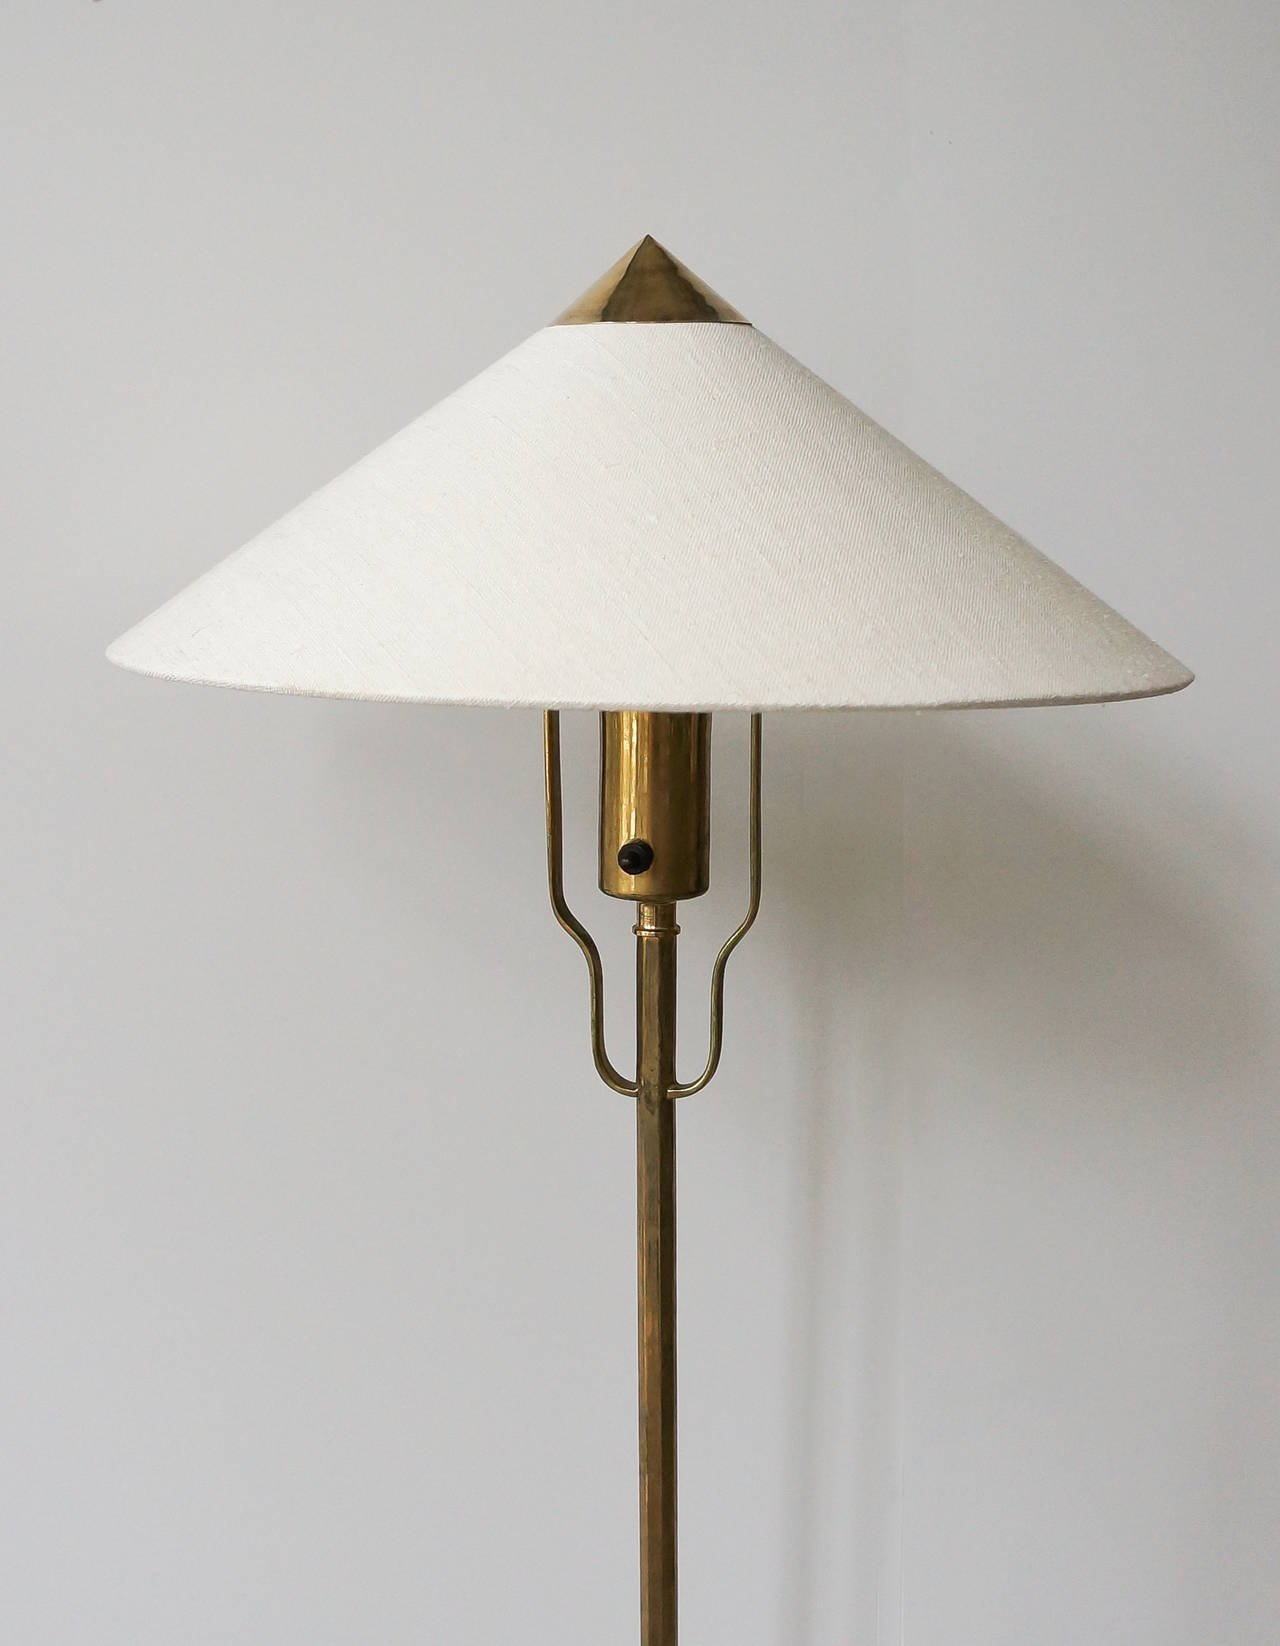 Paavo Tynell Floor Lamp, Model 5762, 1940s